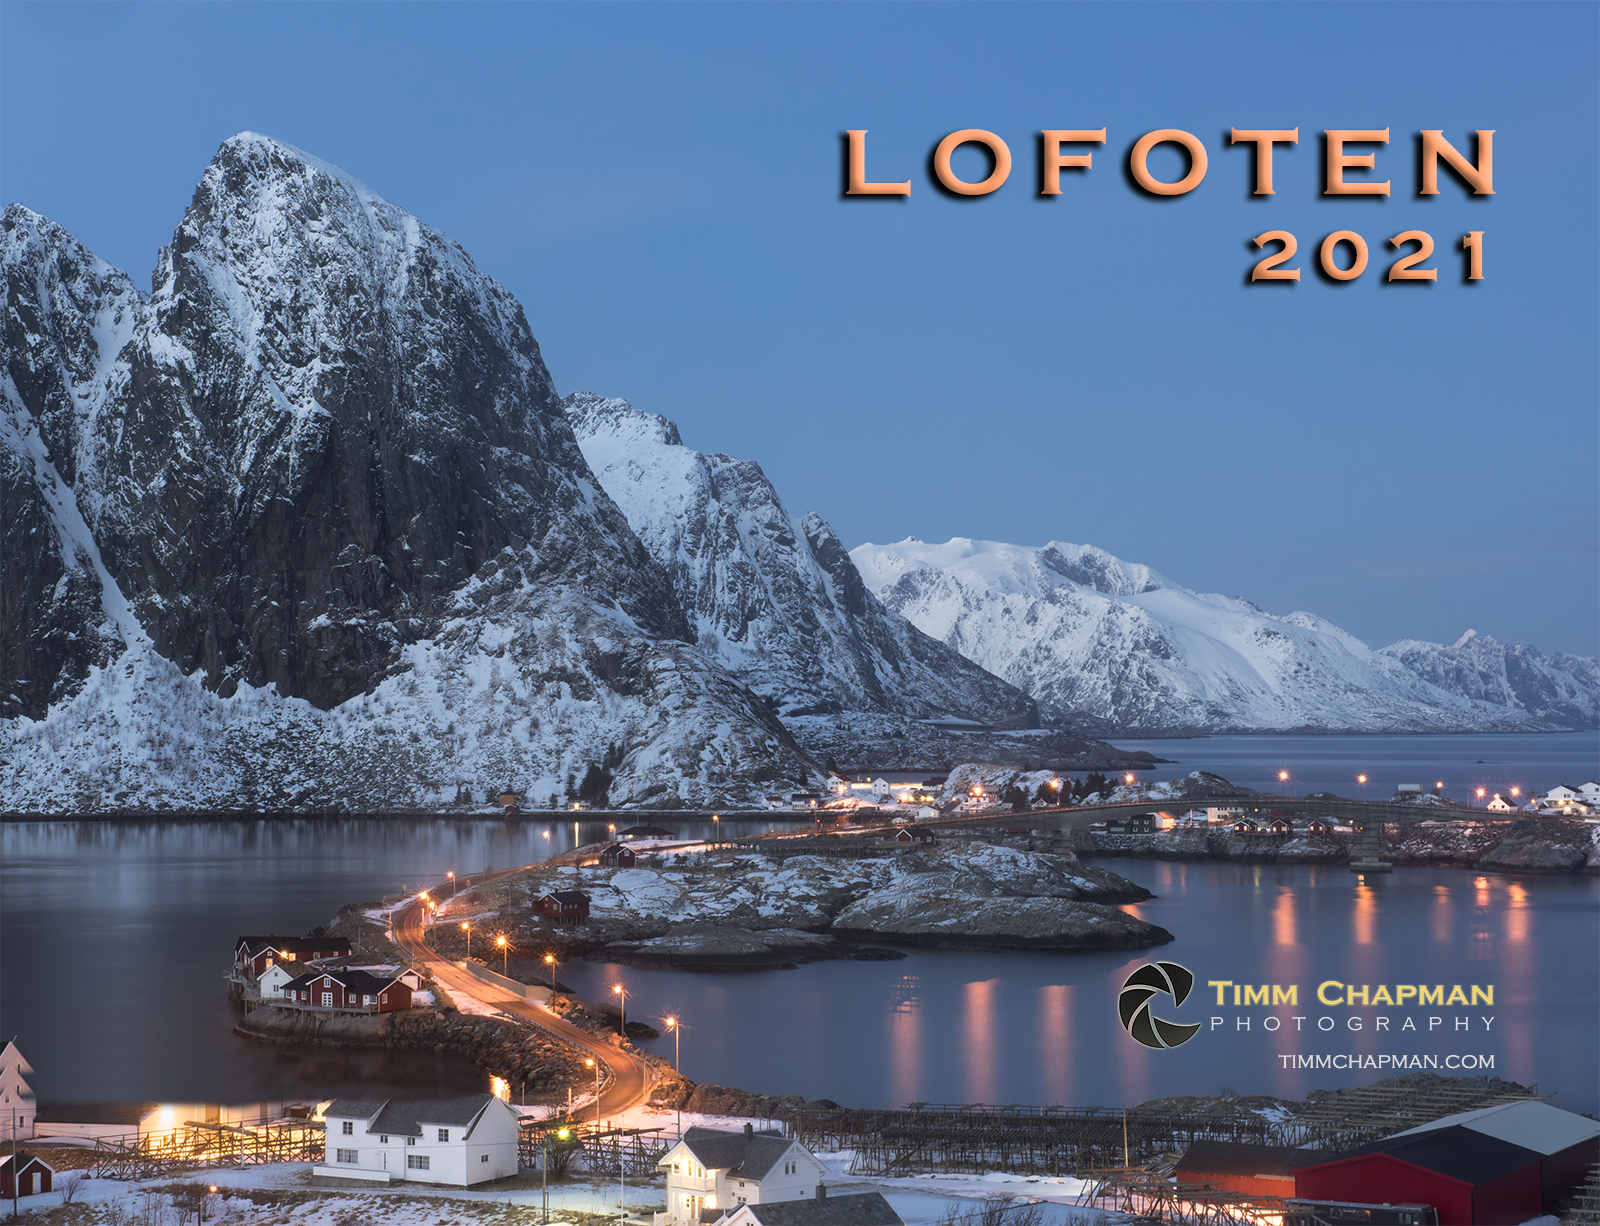 A collection of images from Norway's spectacular Lofoten Archipelago presented in a 12 month calendar for 2021